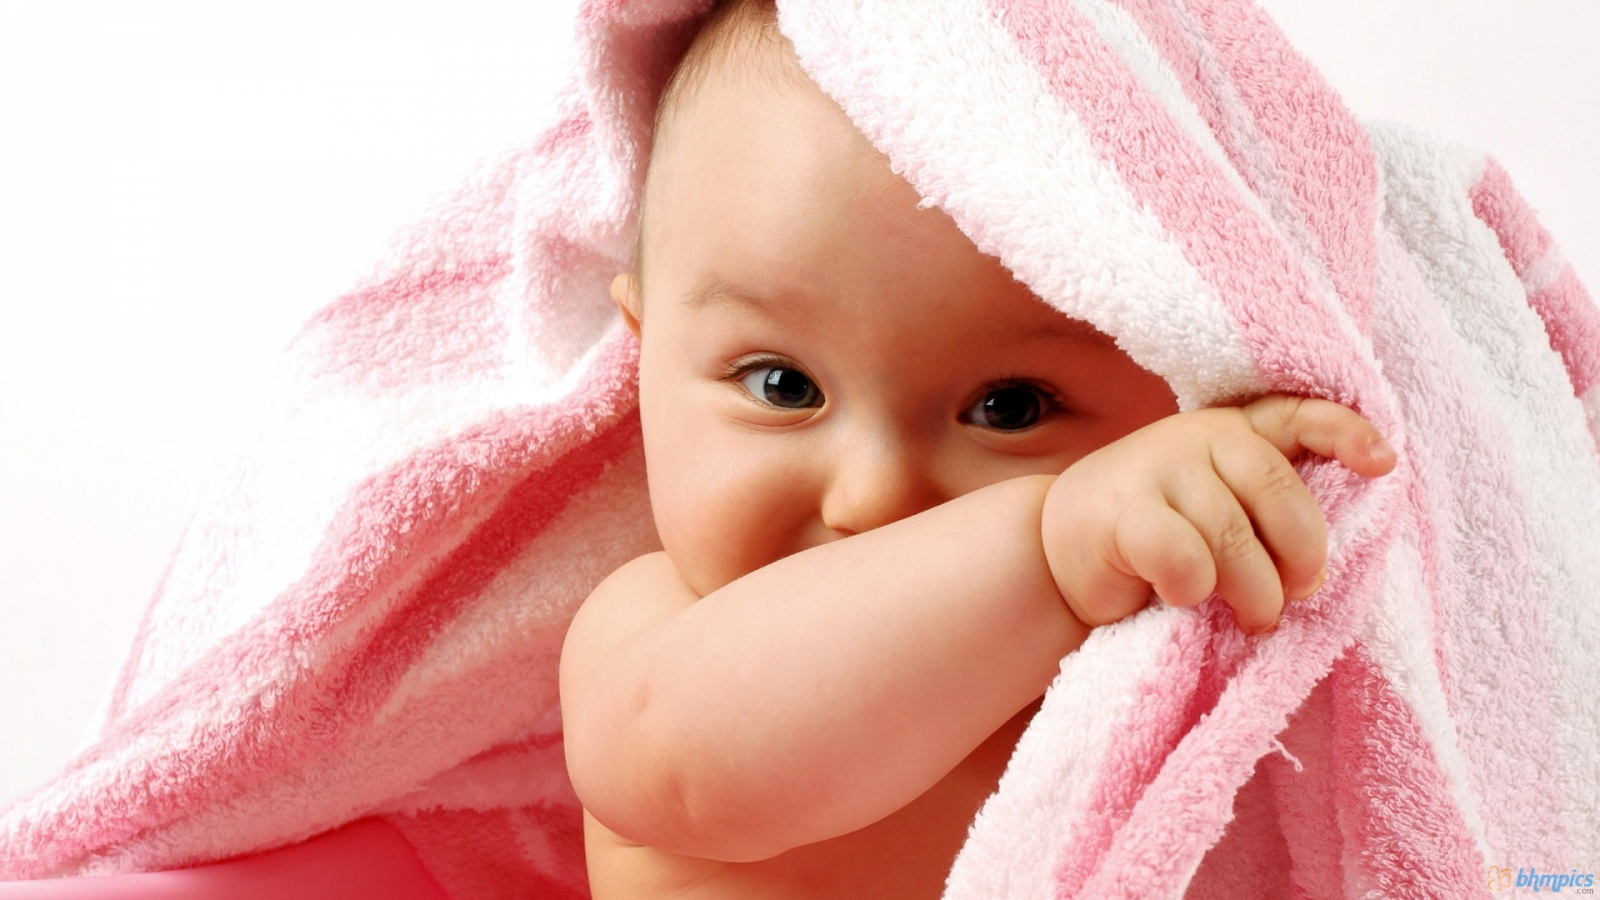 New Born Baby Wallpapers Cute Babies Wallpapers Amazing Wallpapers